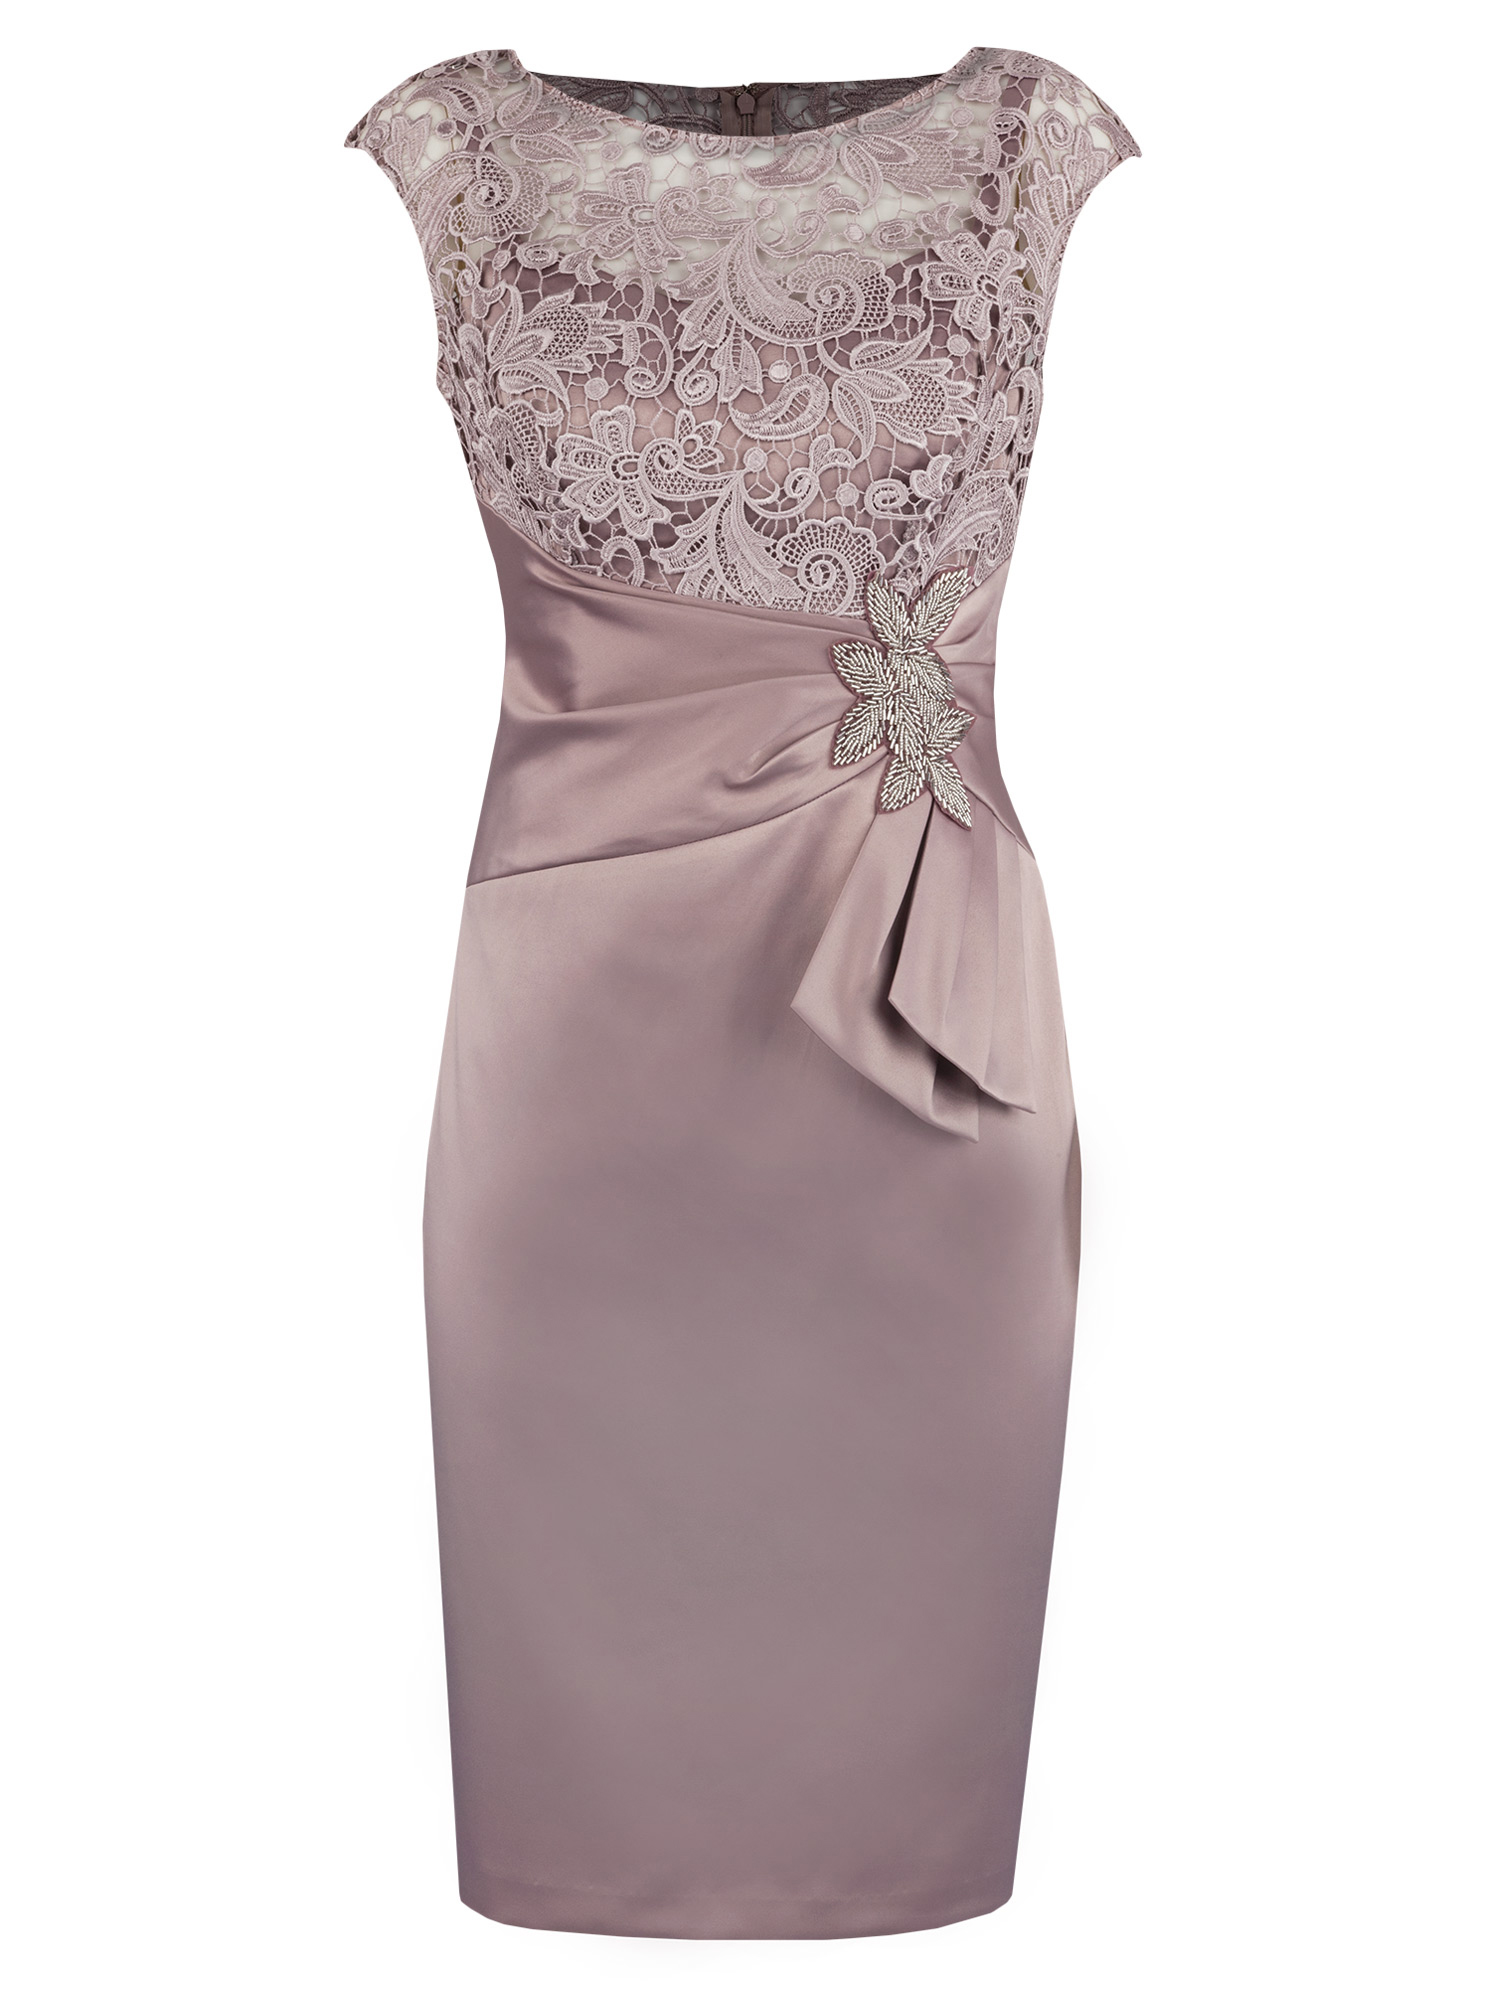 Sheath Bateau Short Champagne Satin Mother of The Bride Dress with Lace Beading